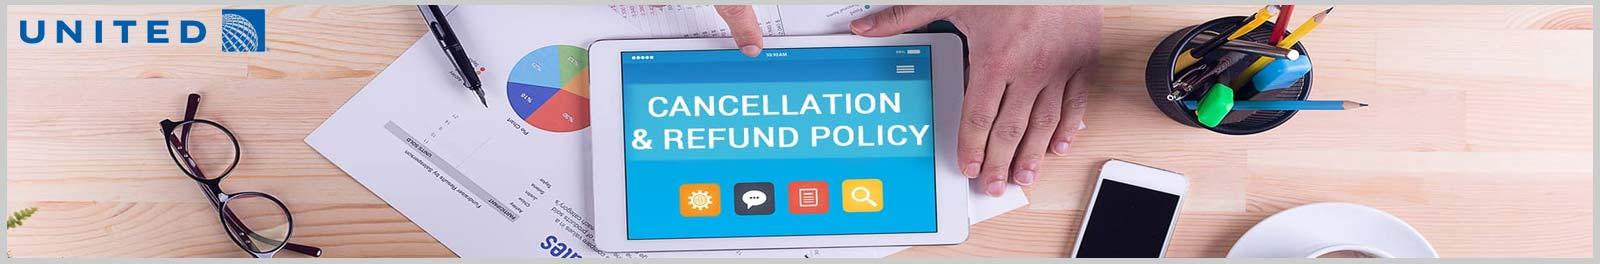 United Airlines Flight Cancellation & Refund Policy